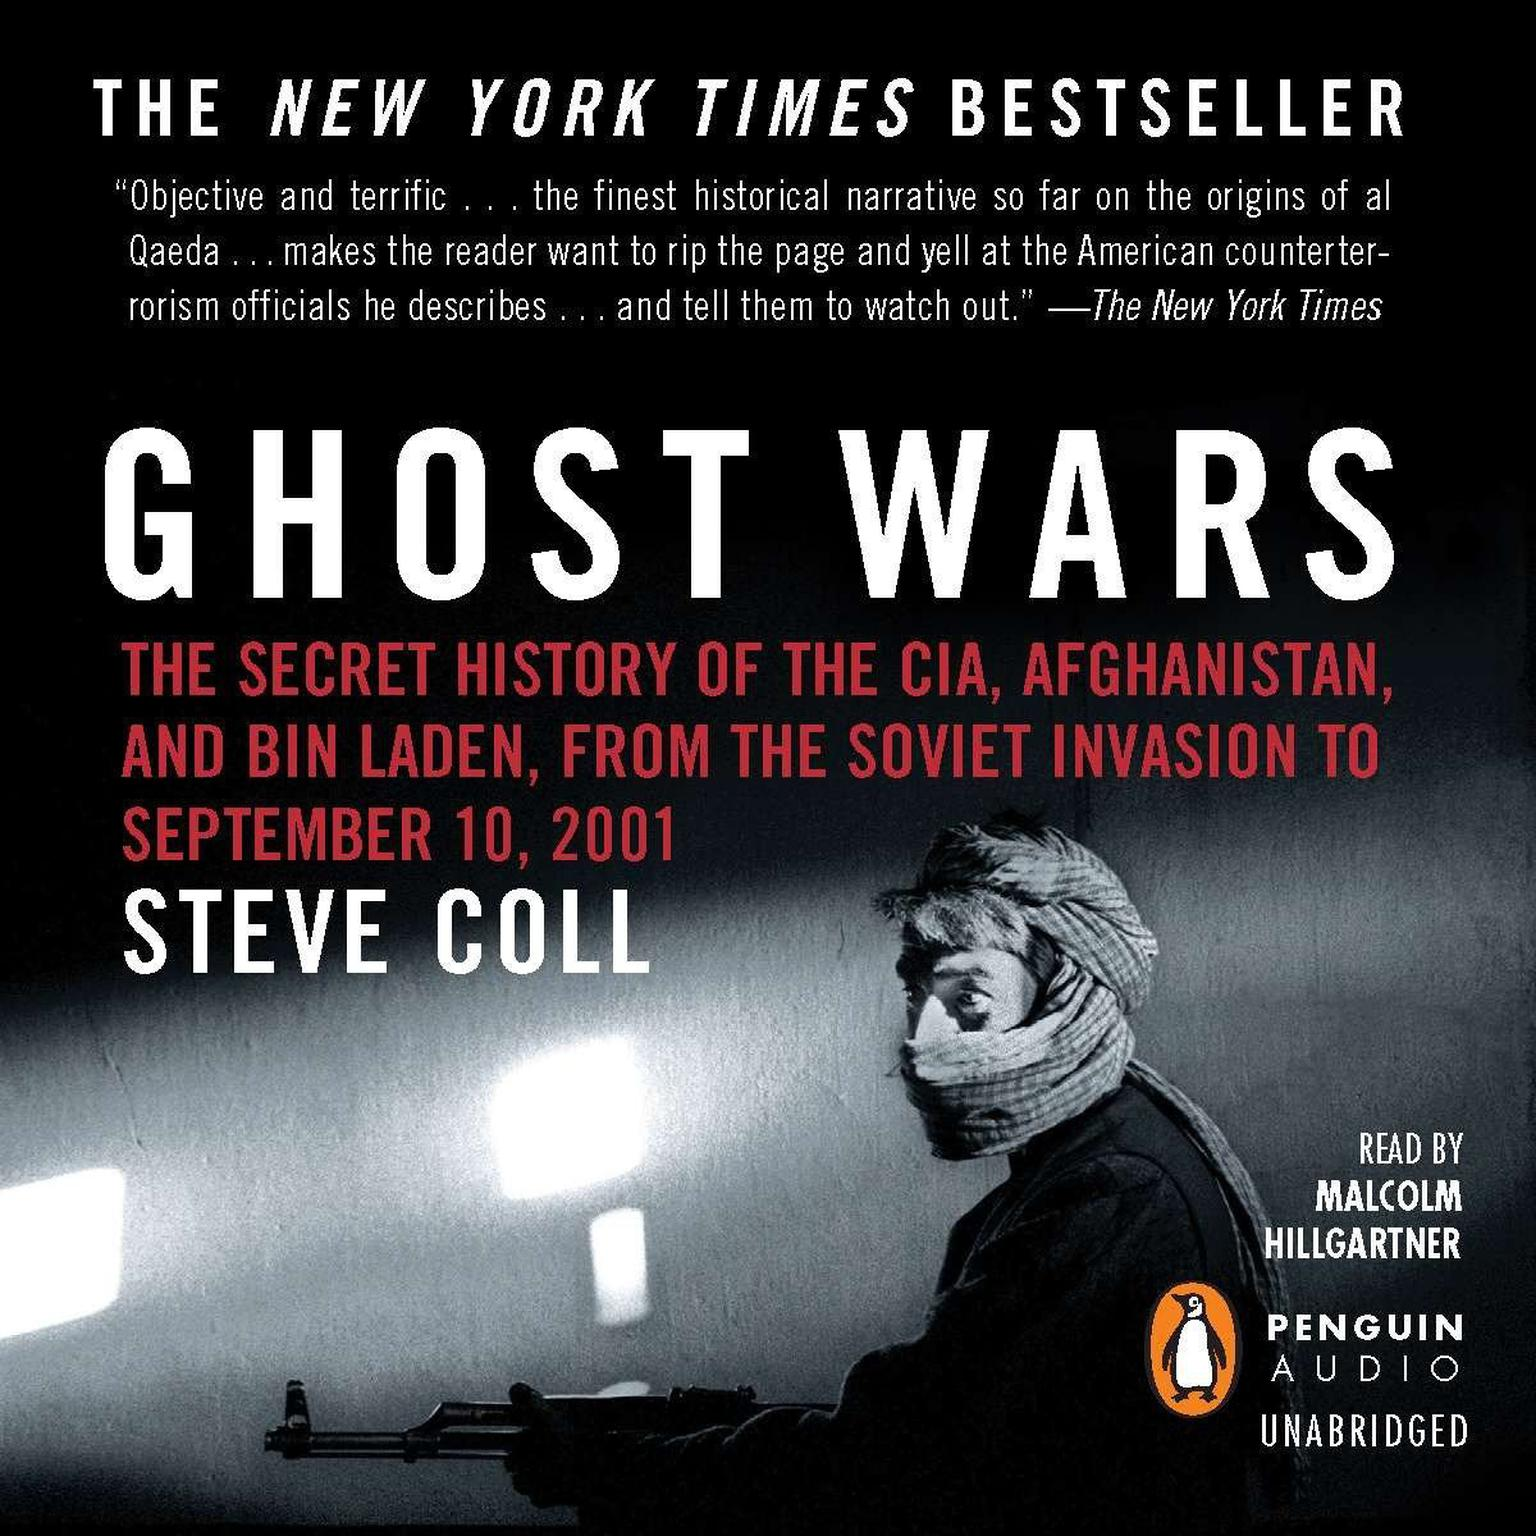 Printable Ghost Wars: The Secret History of the CIA, Afghanistan, and bin Laden, from the Soviet Invas ion to September 10, 2001 Audiobook Cover Art